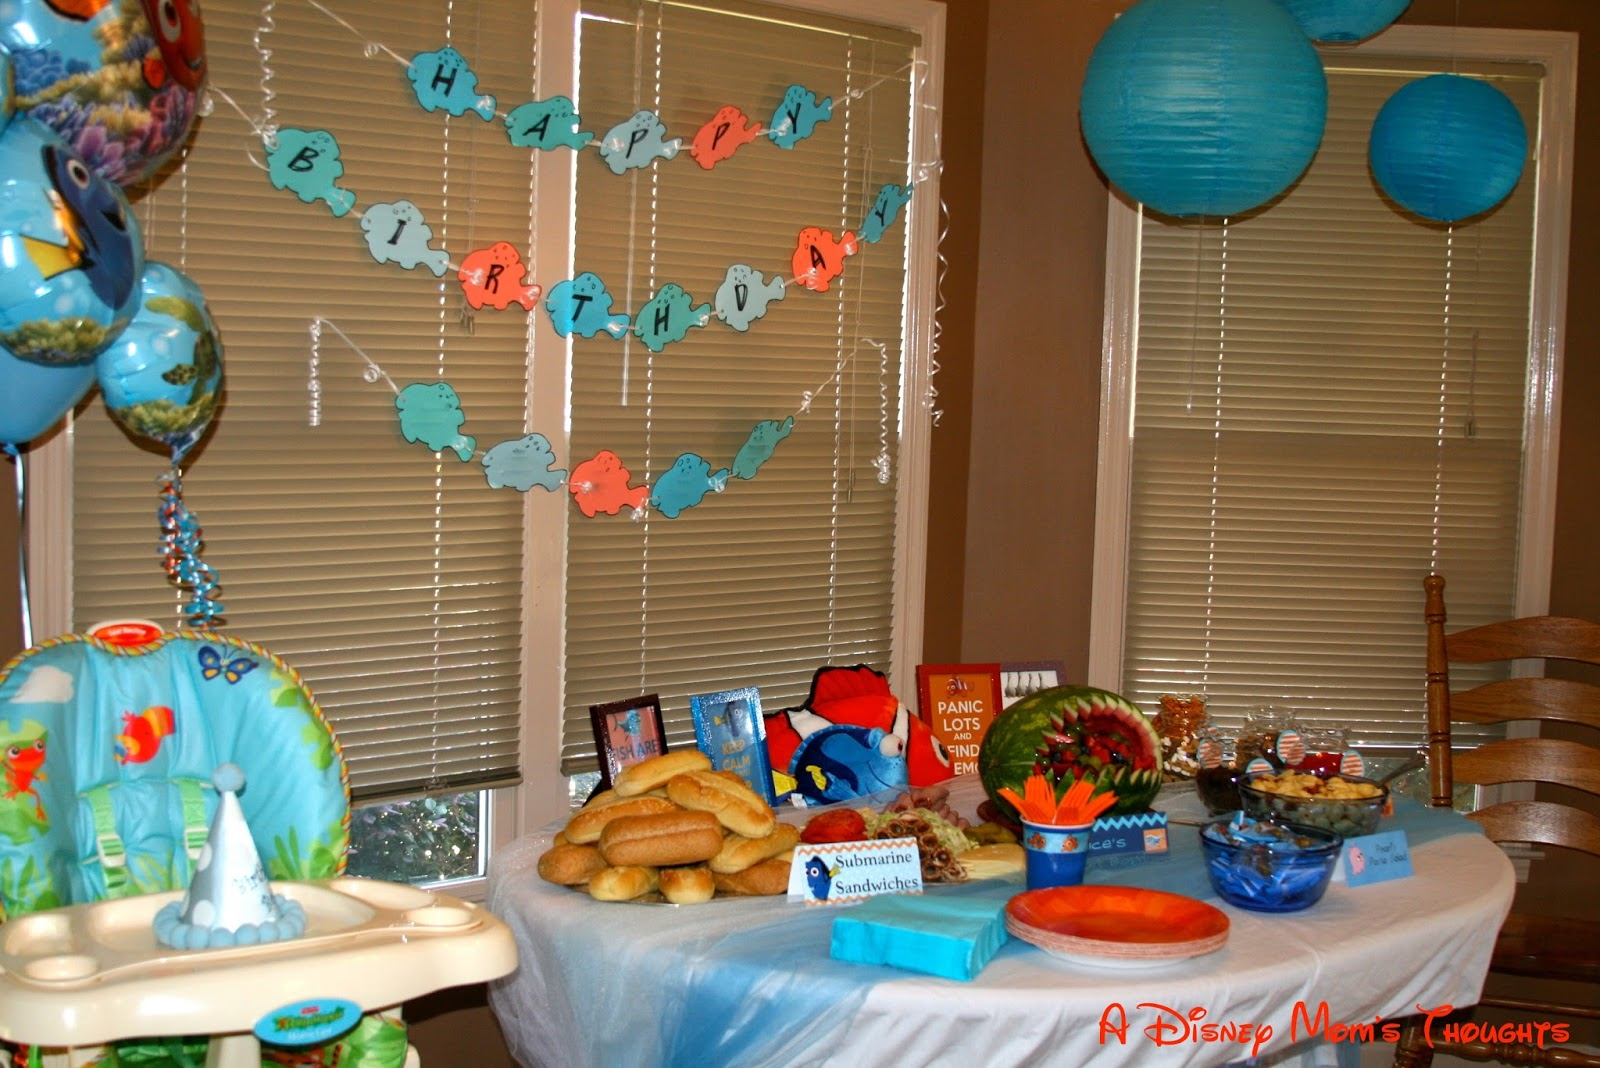 Finding nemo first birthday decorations a disney mom 39 s for 1st birthday decoration ideas